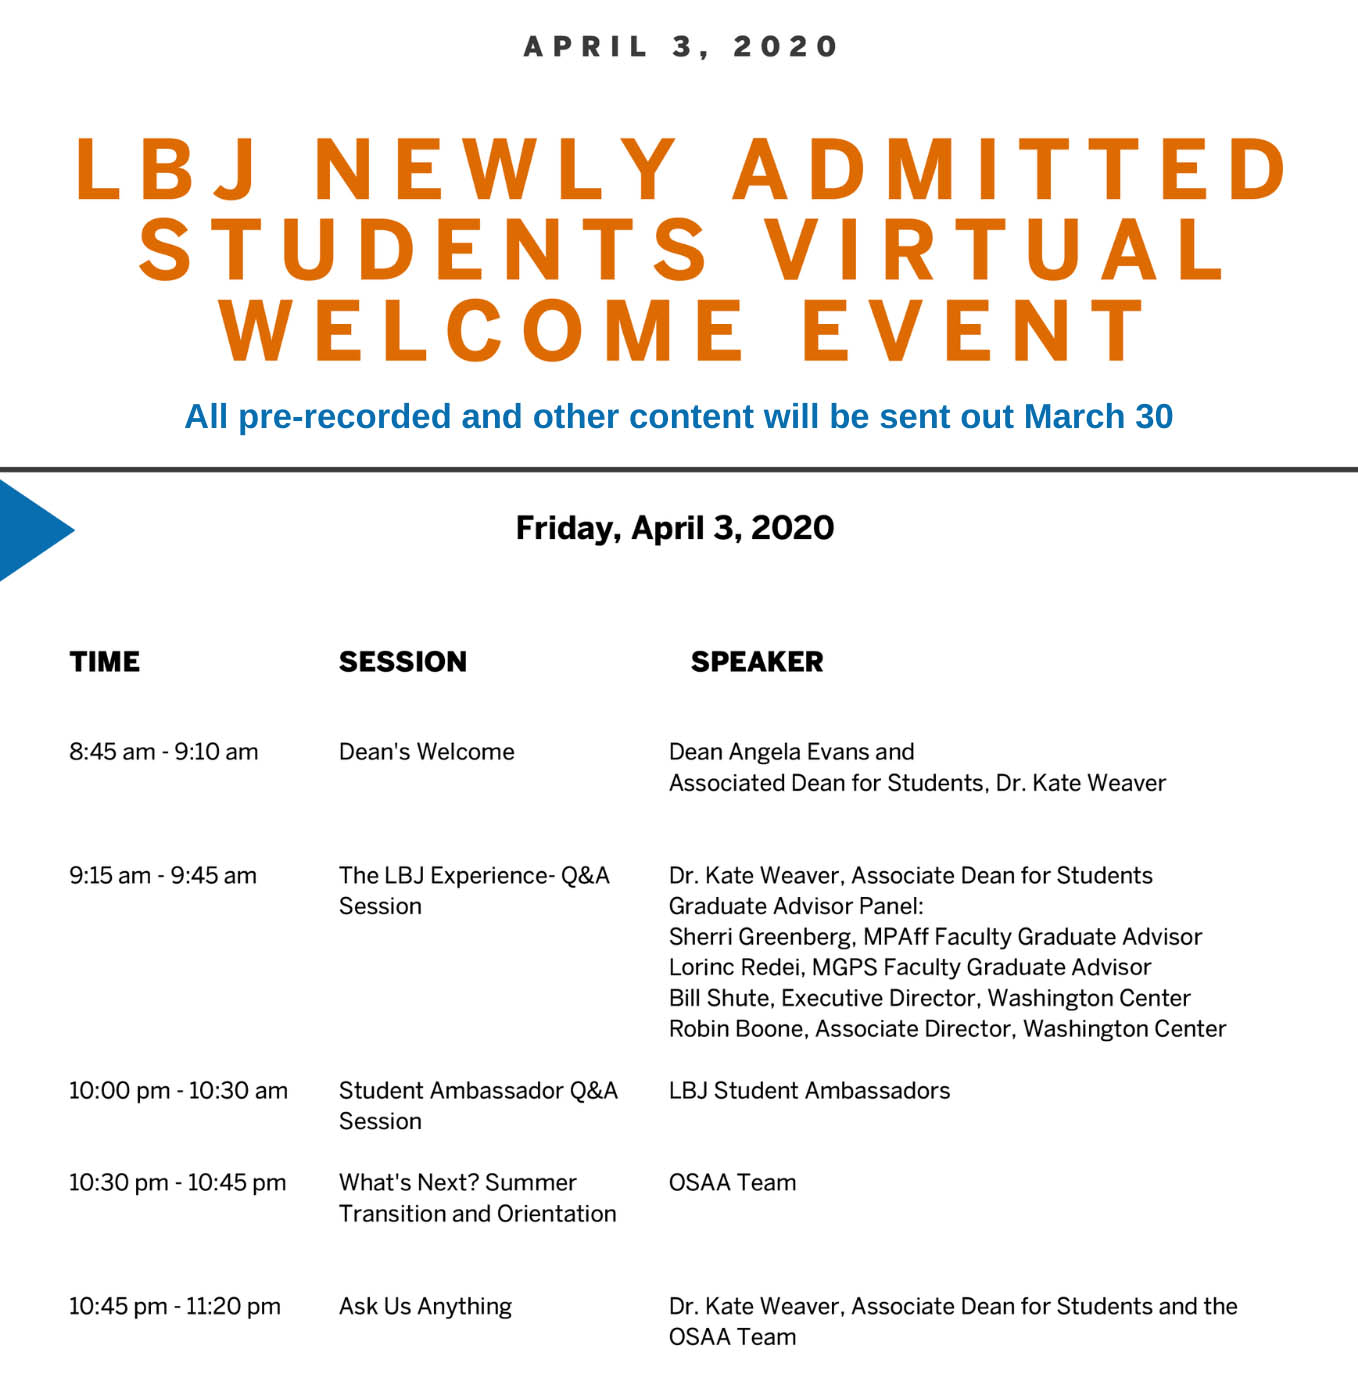 LBJ Admitted Students Weekend schedule for April 3, 2020